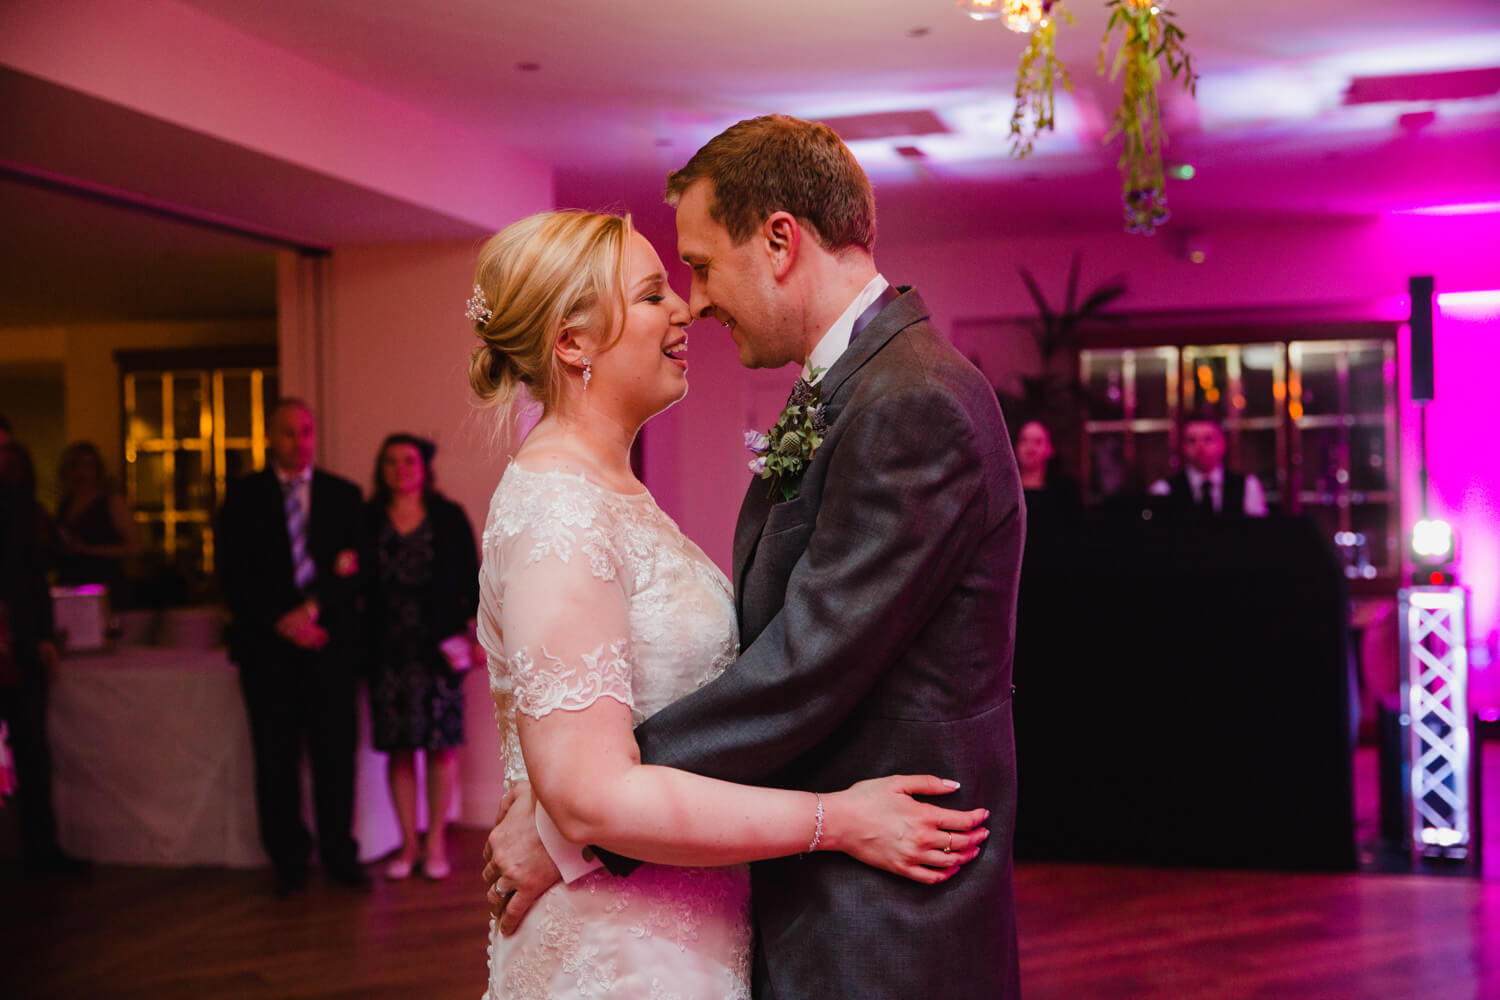 close up intimate photograph of newlyweds first dance together